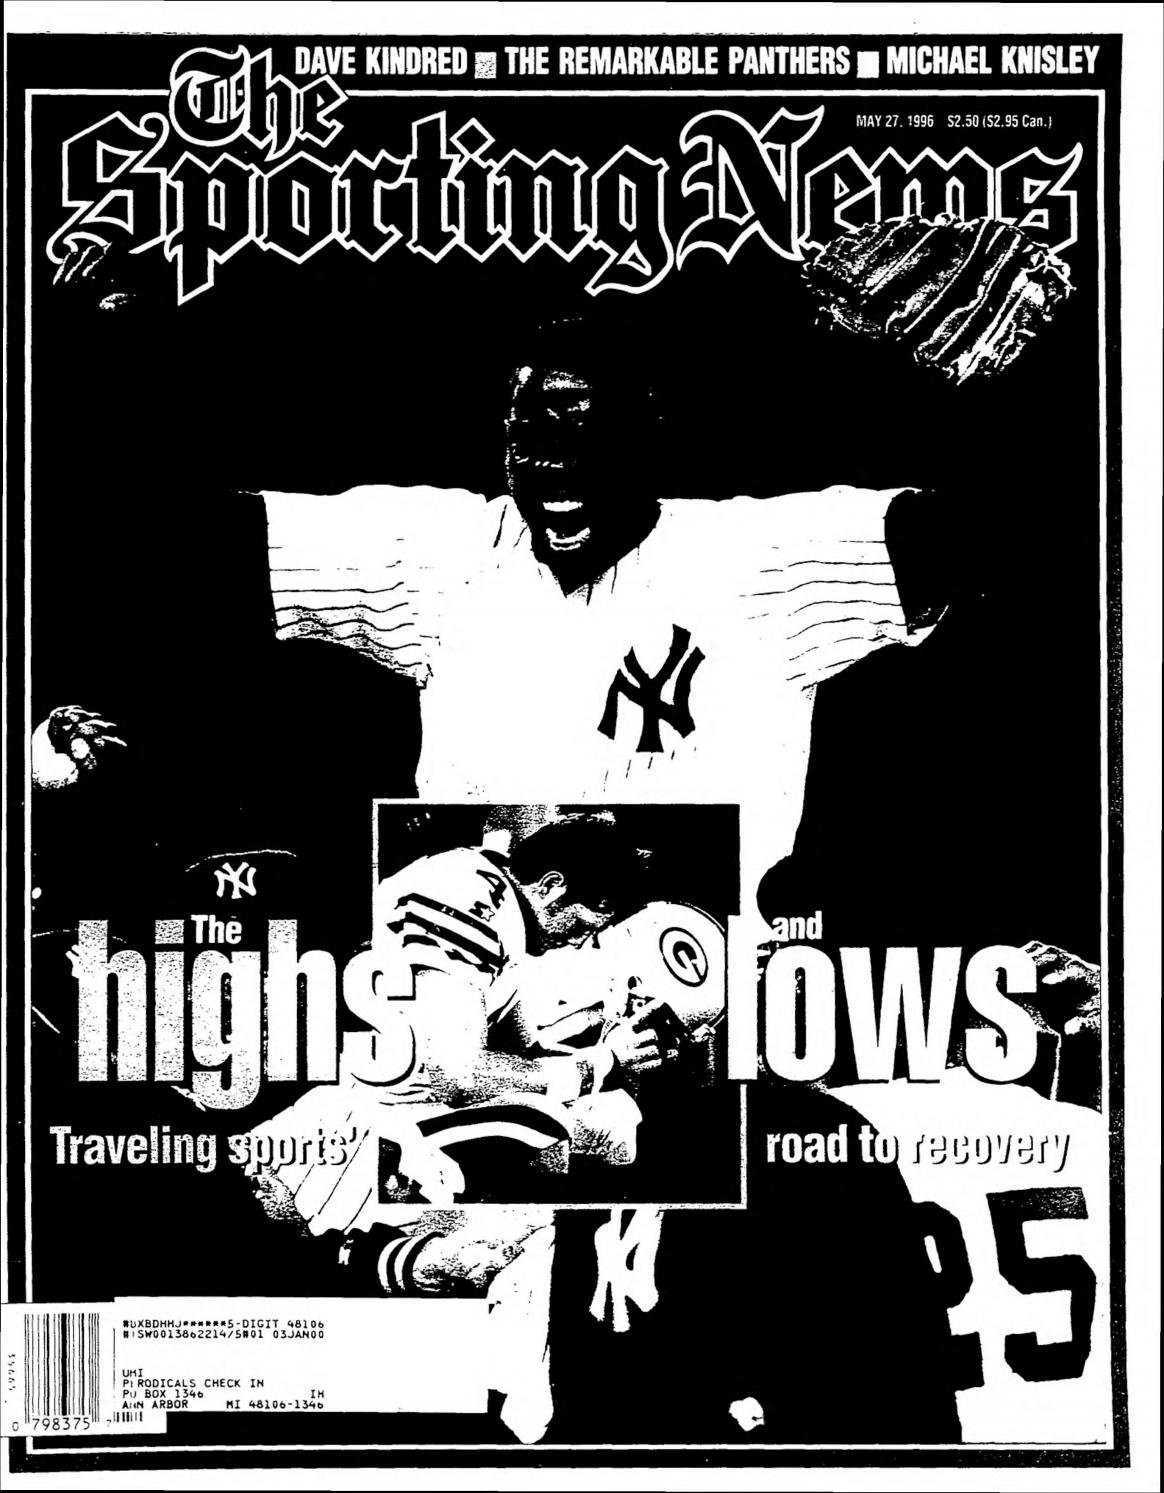 The sporting news 05 27 1996 by Mexico Sports Collectibles